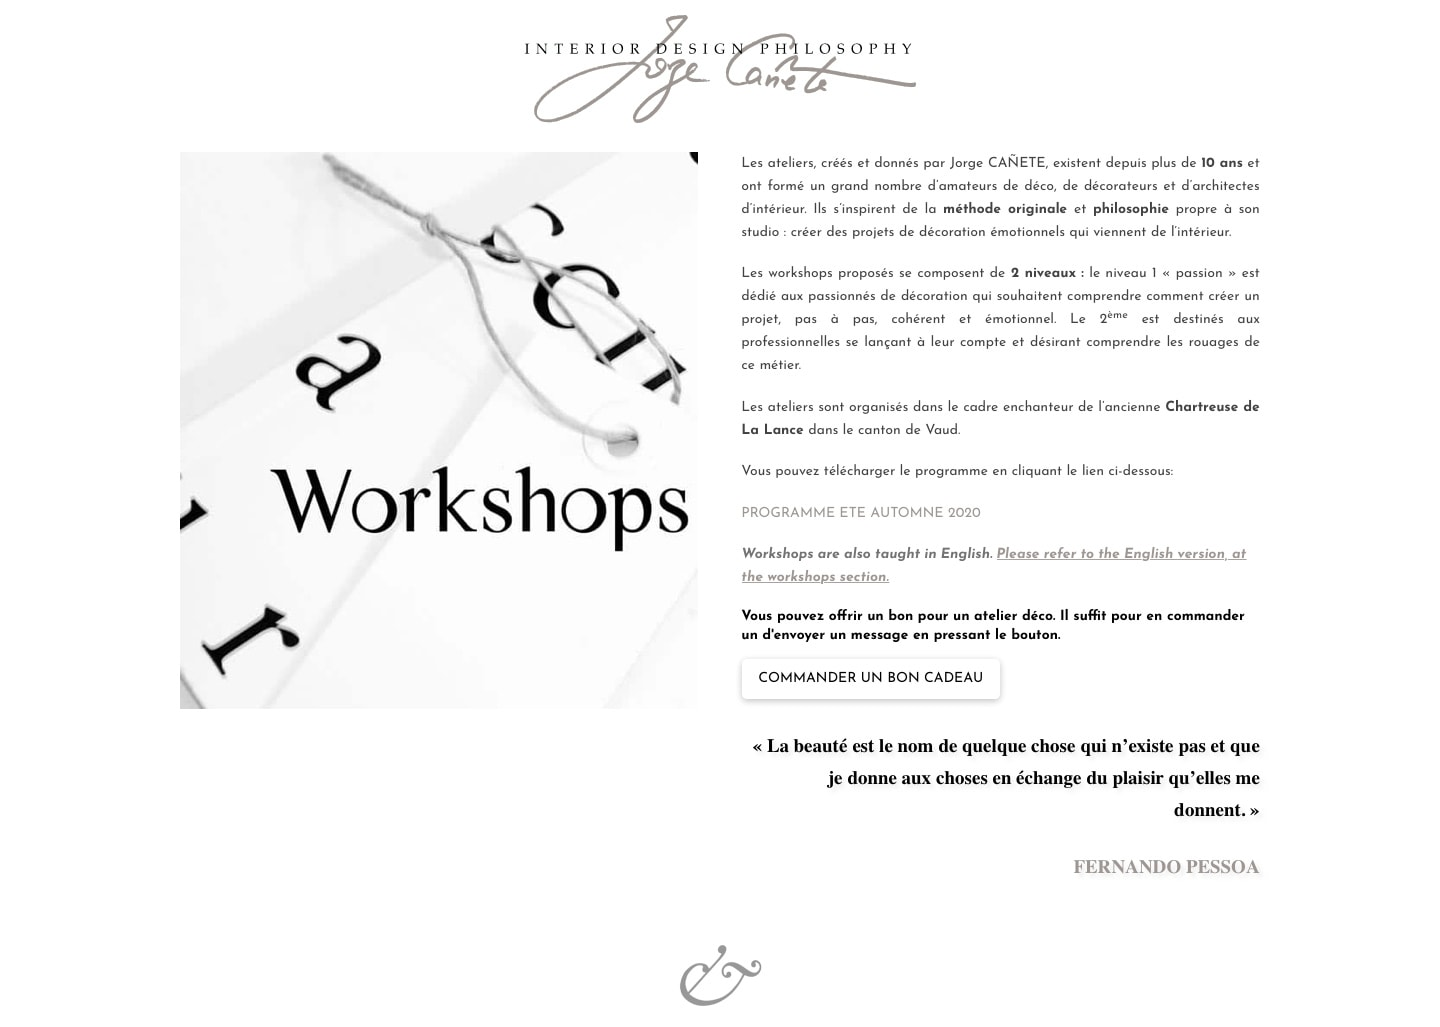 Page des Workshops du site de l'agence Interior Design Philosophy